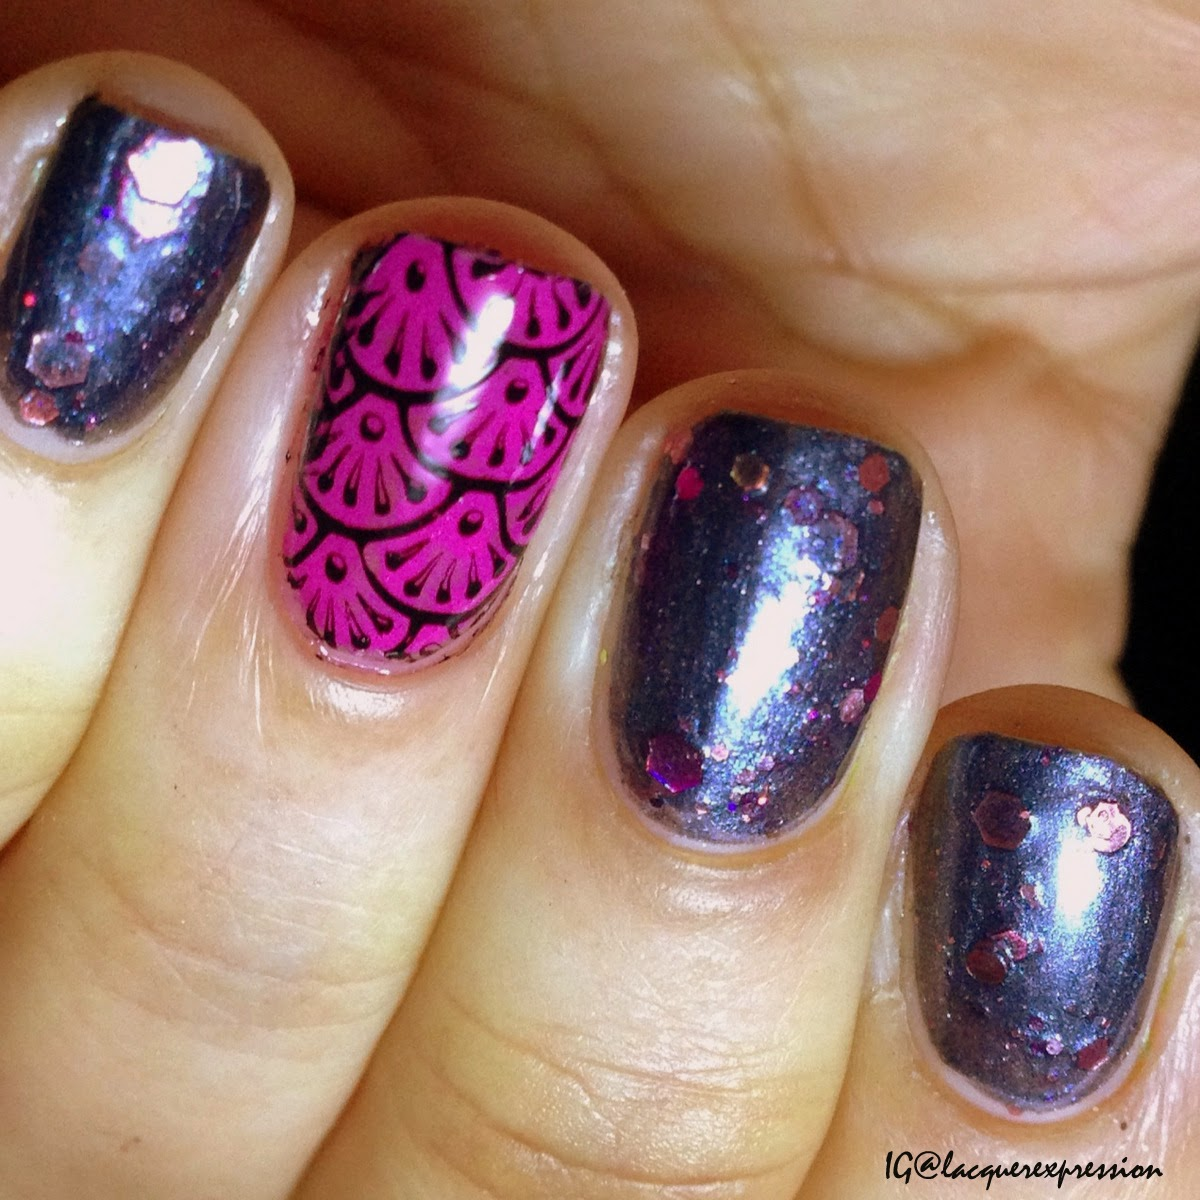 swatch and review of guns and roses nail polish by jindie nails